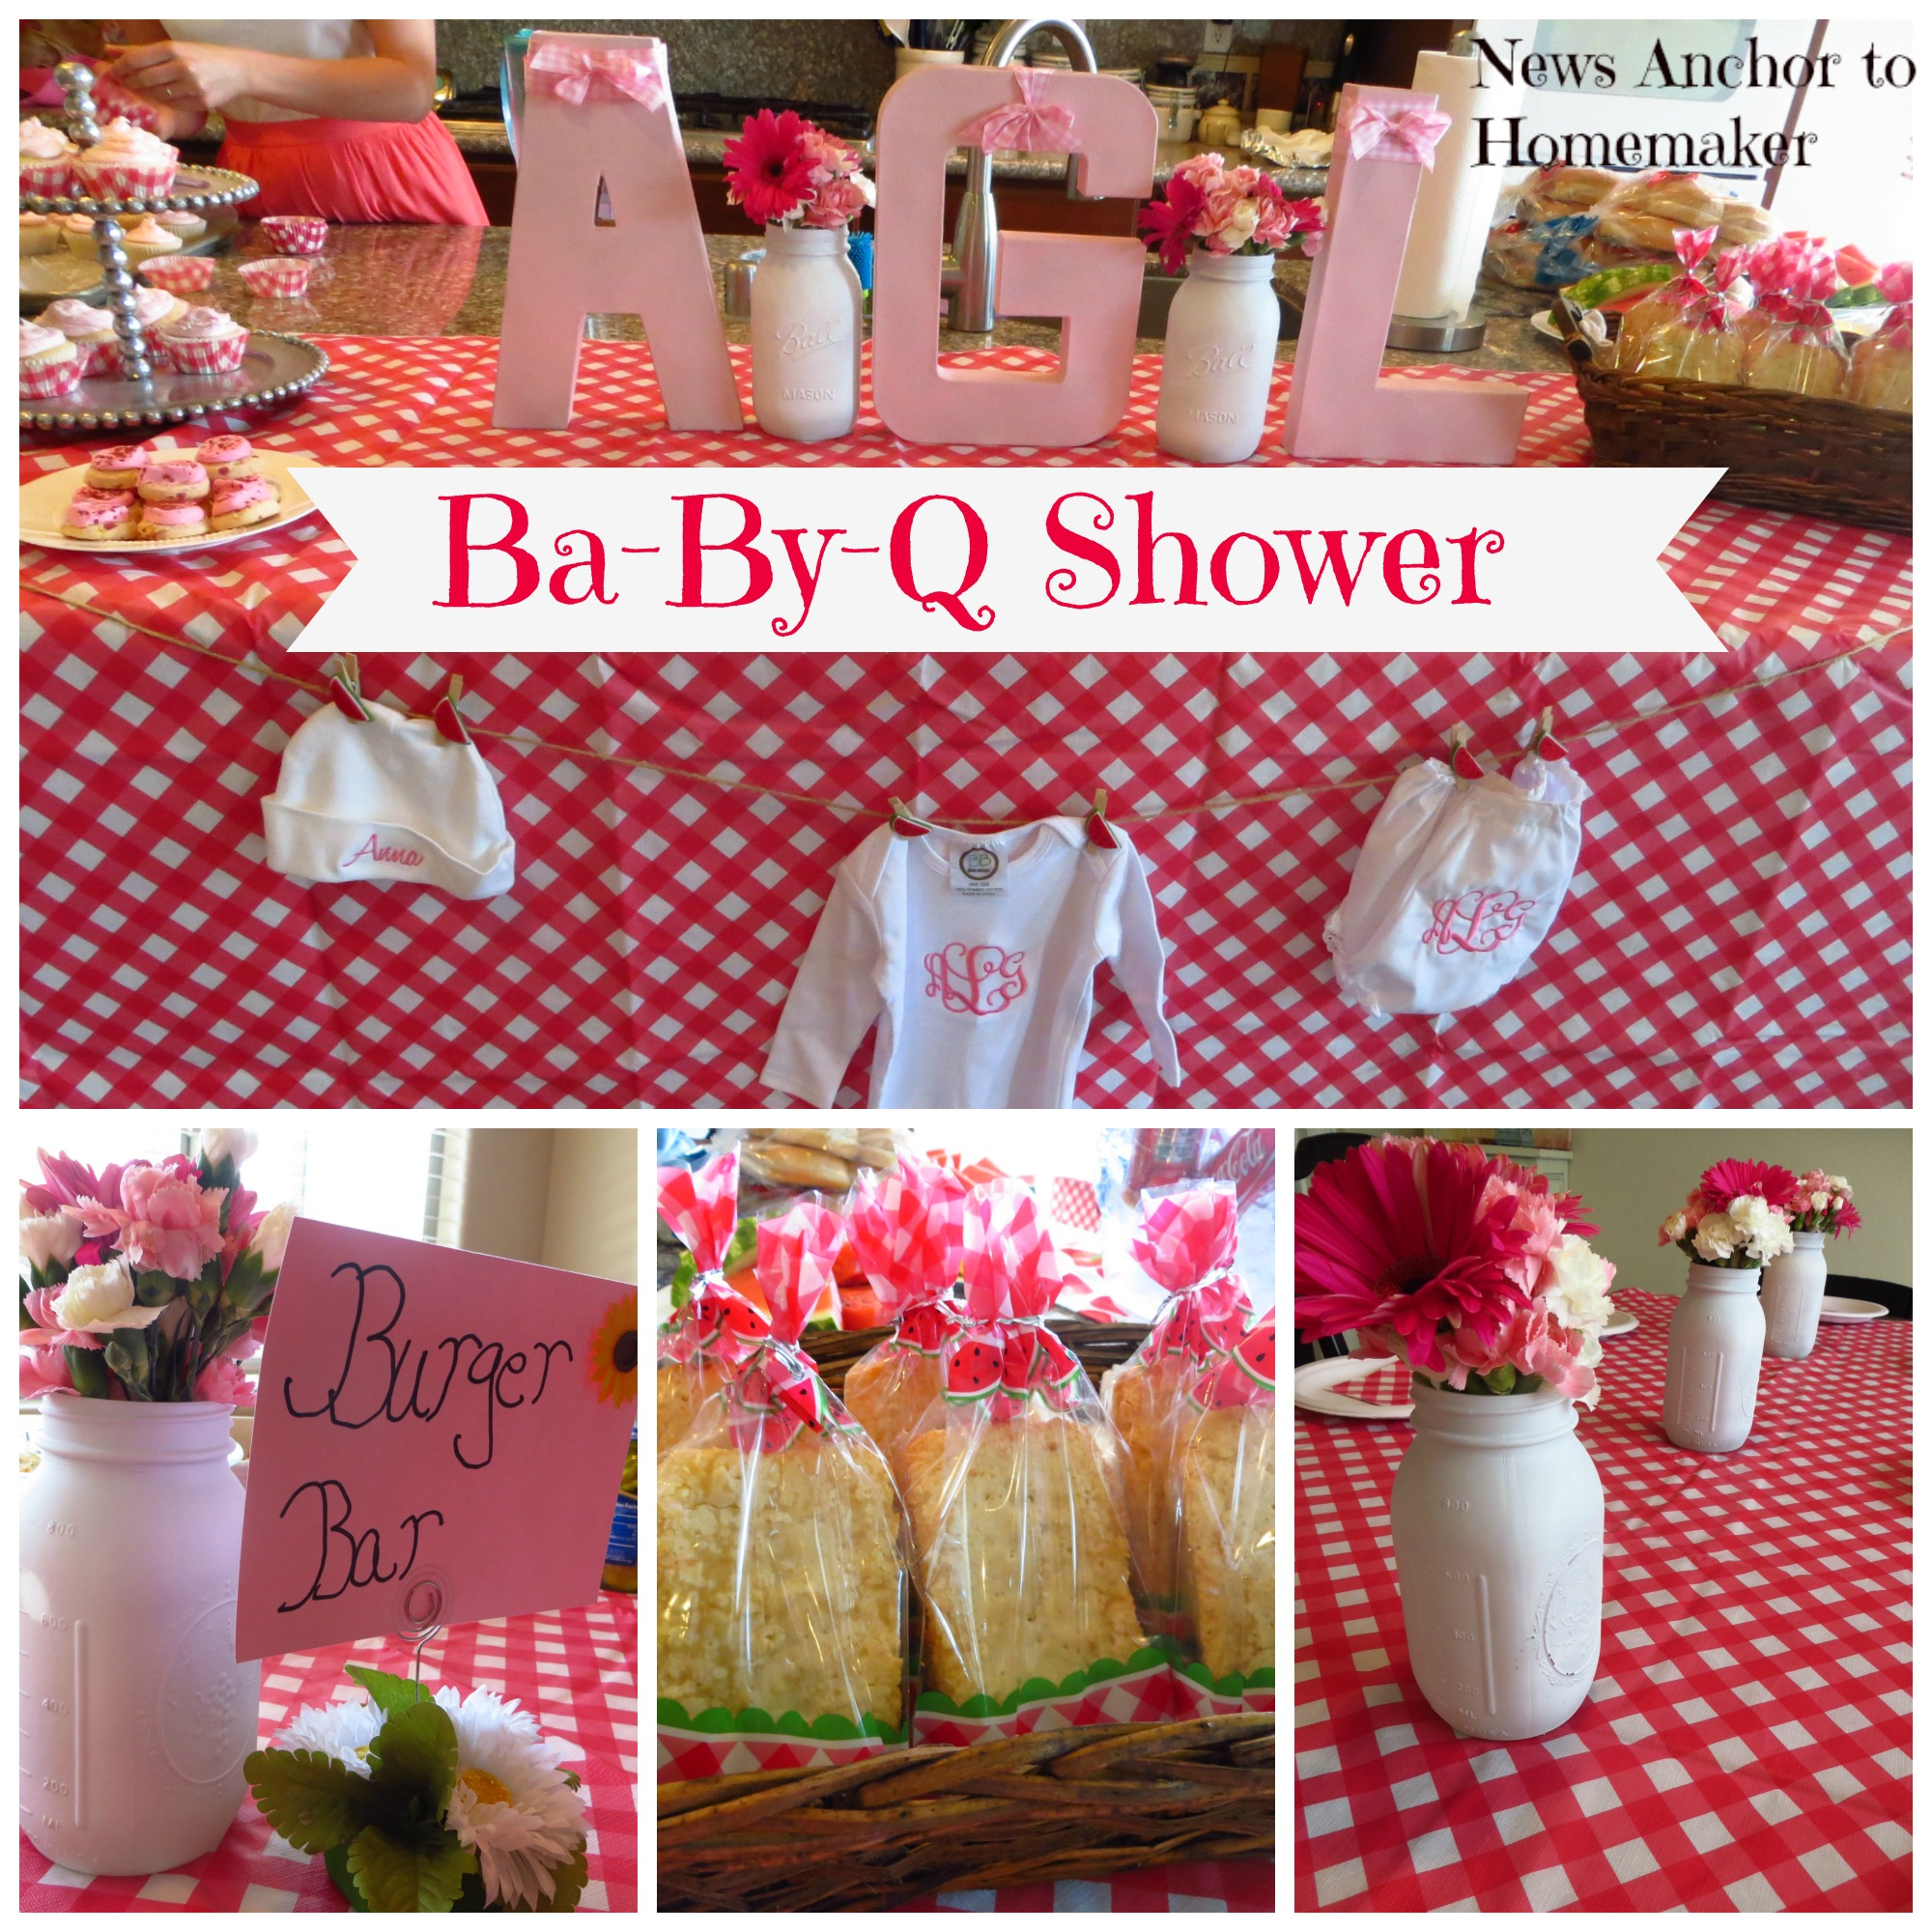 babyq shower {coed barbecue themed baby shower}  news anchor, Baby shower